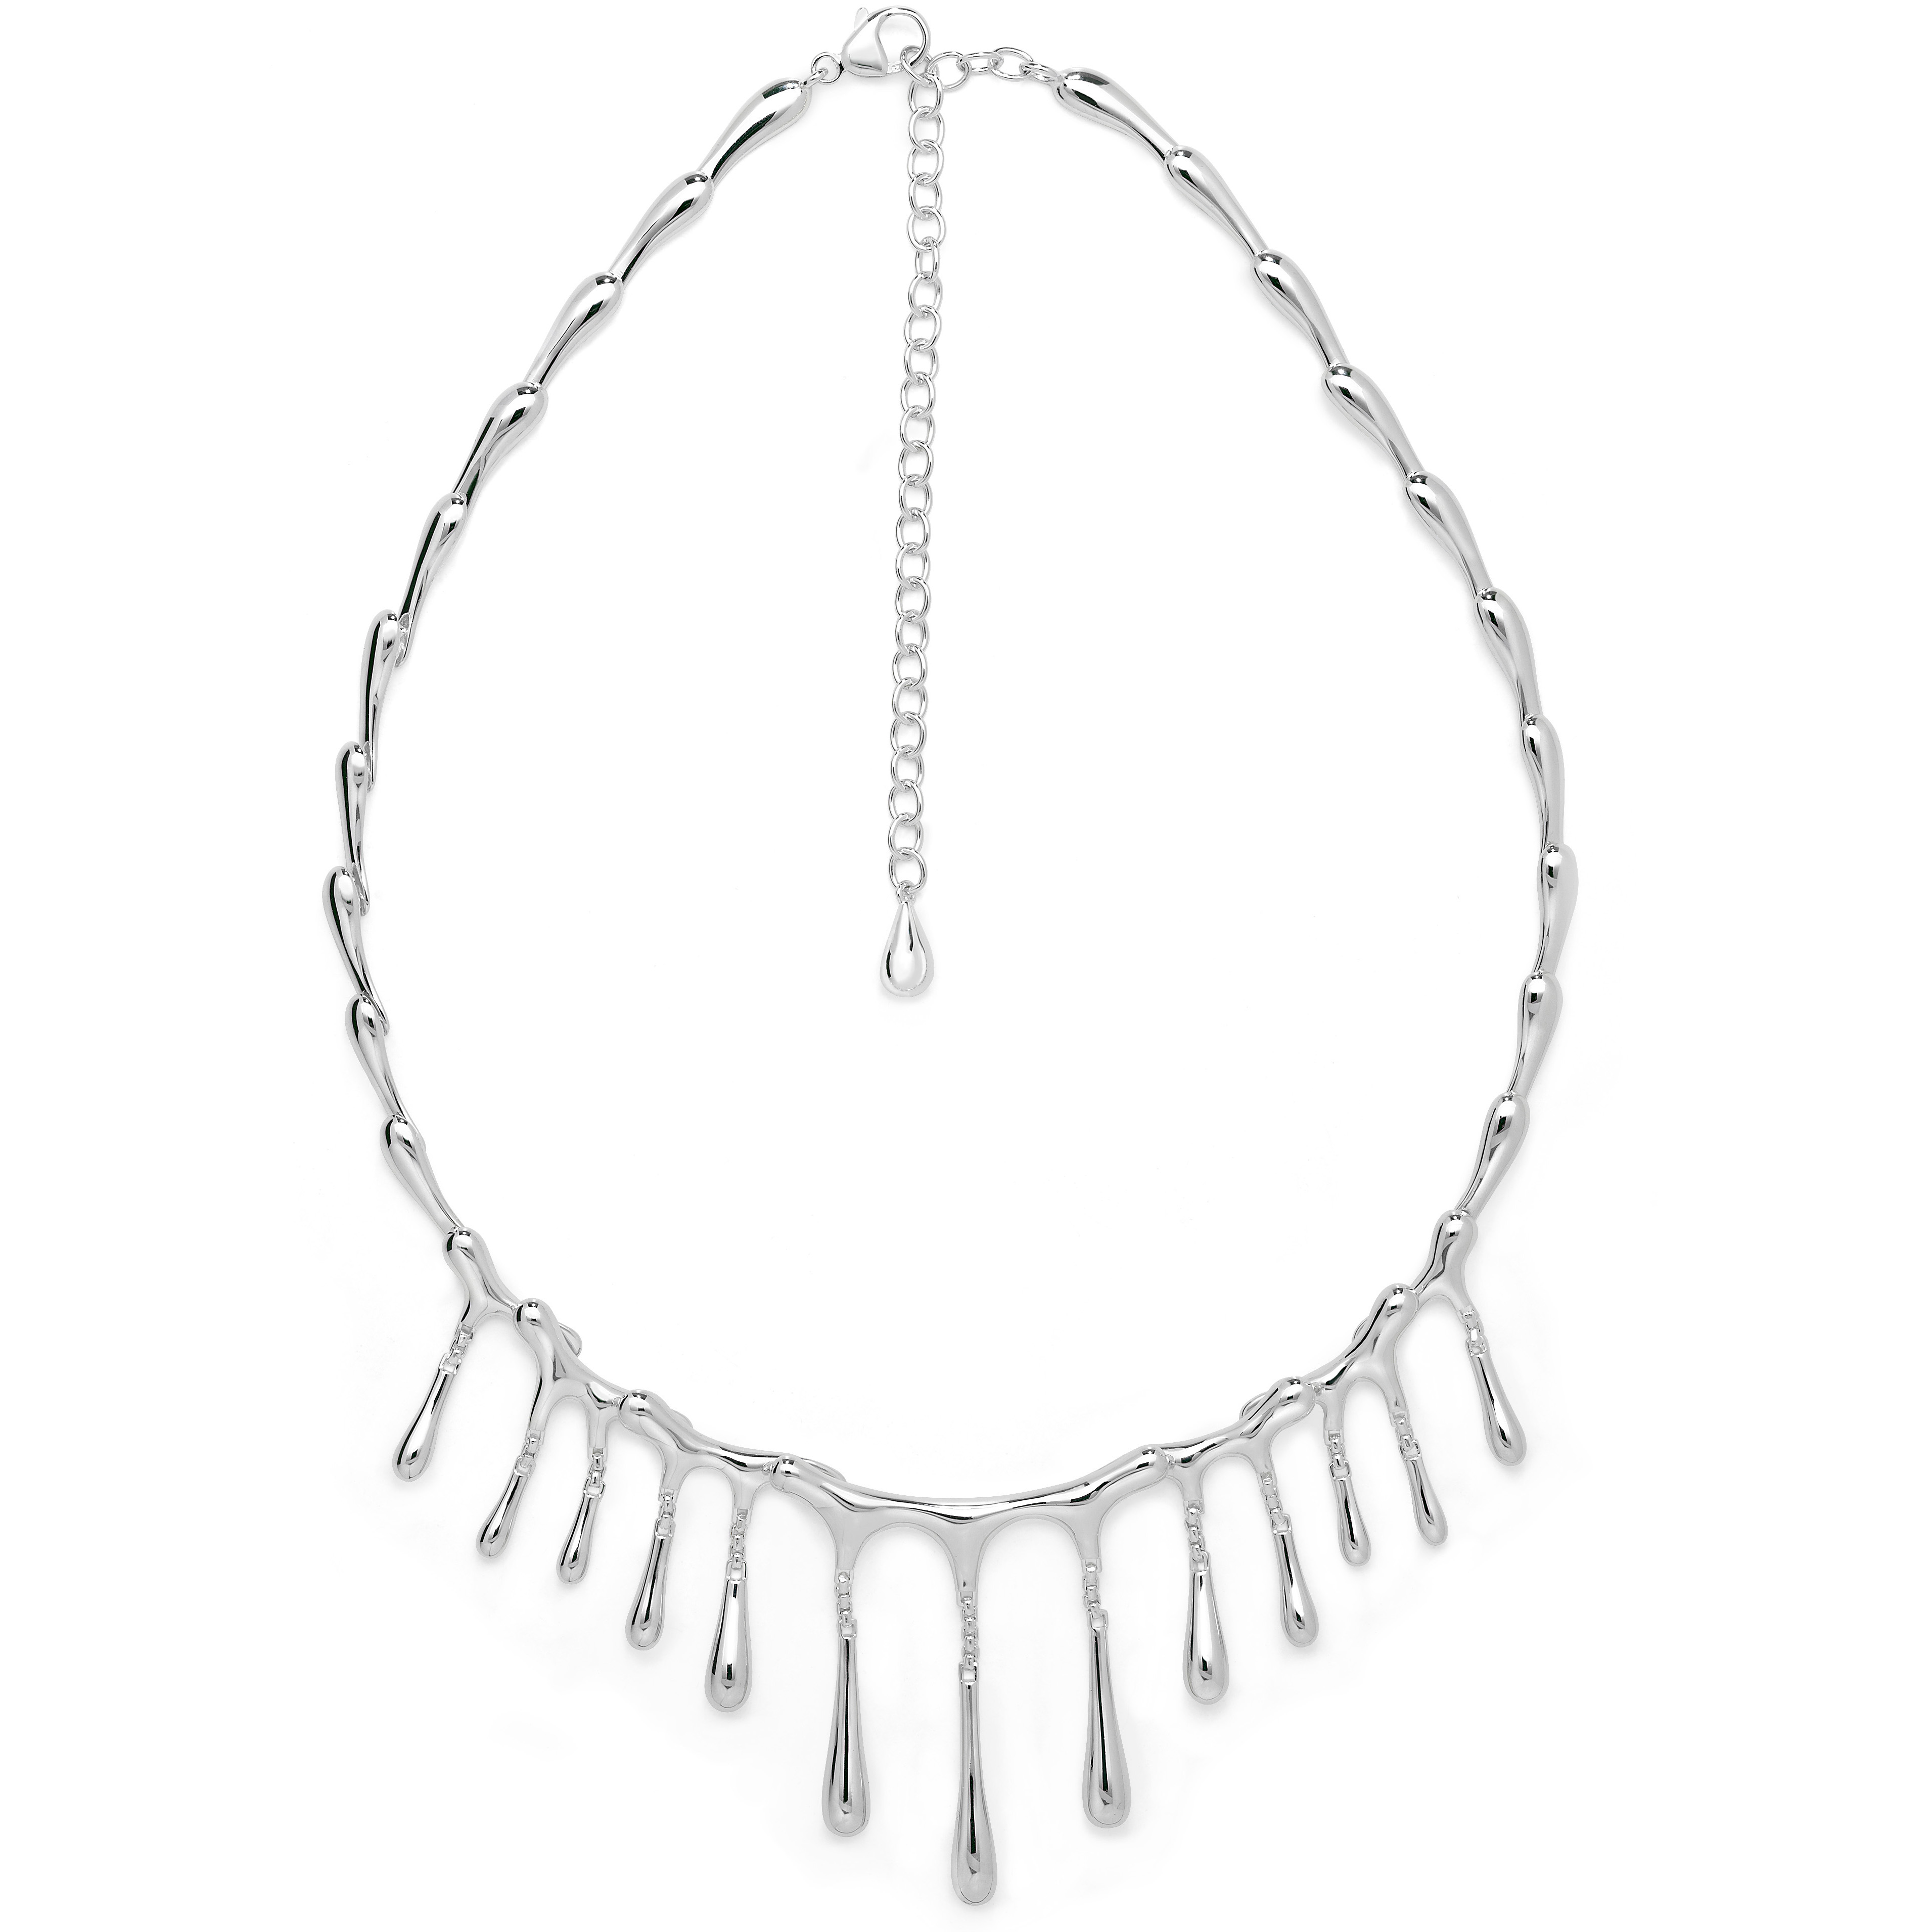 Lucy Q Award-Winning Multi-Drip Necklace